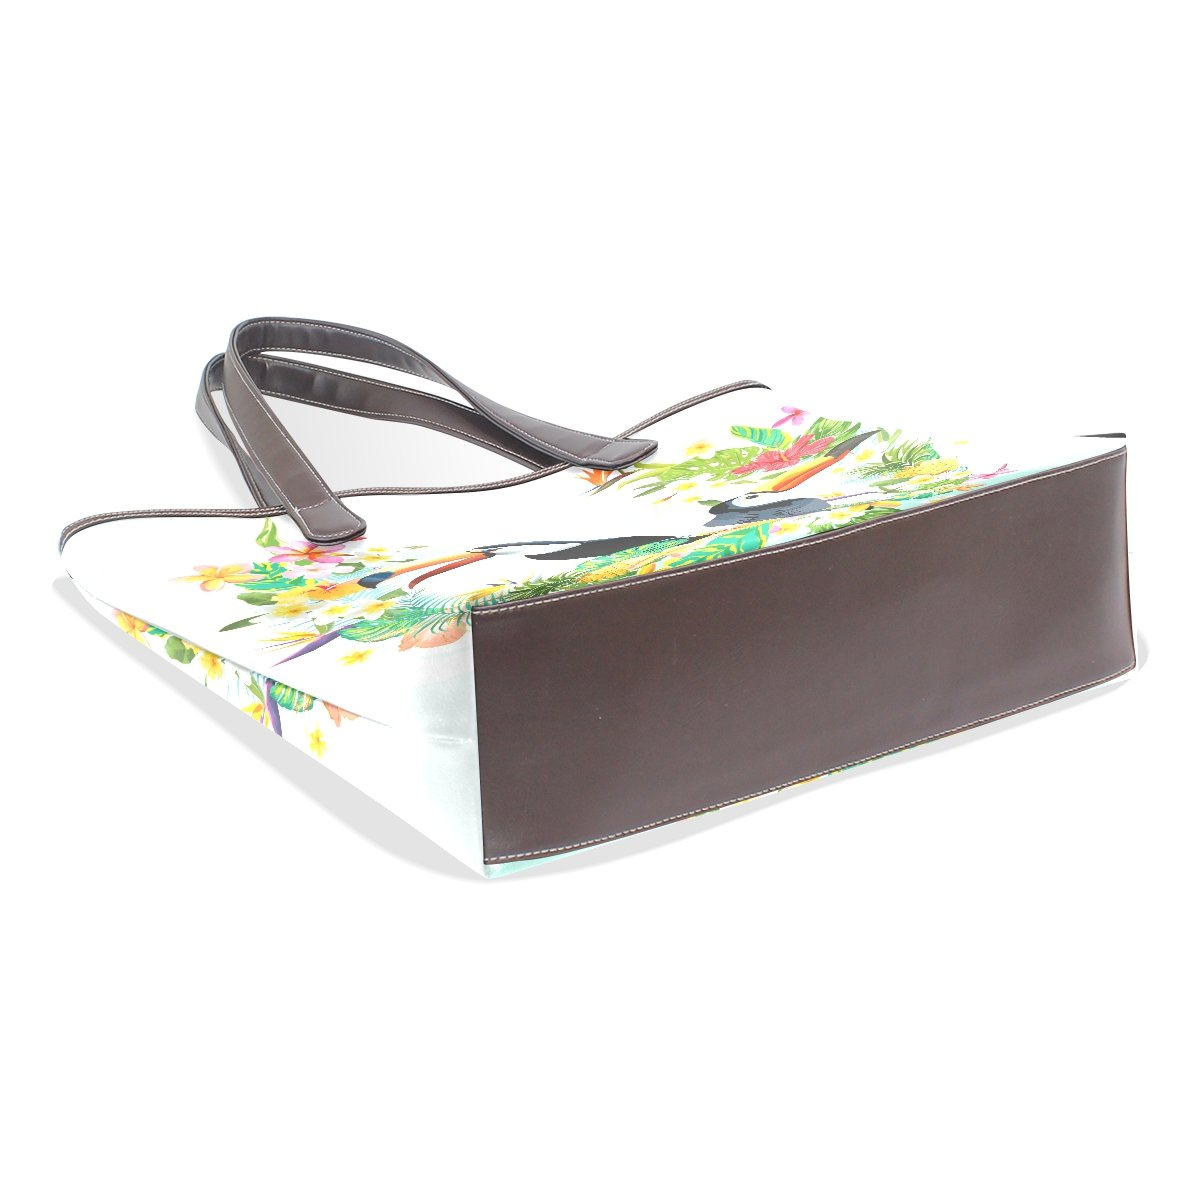 Ye Store Toucan With Floral Heart Lady PU Leather Handbag Tote Bag Shoulder Bag Shopping Bag